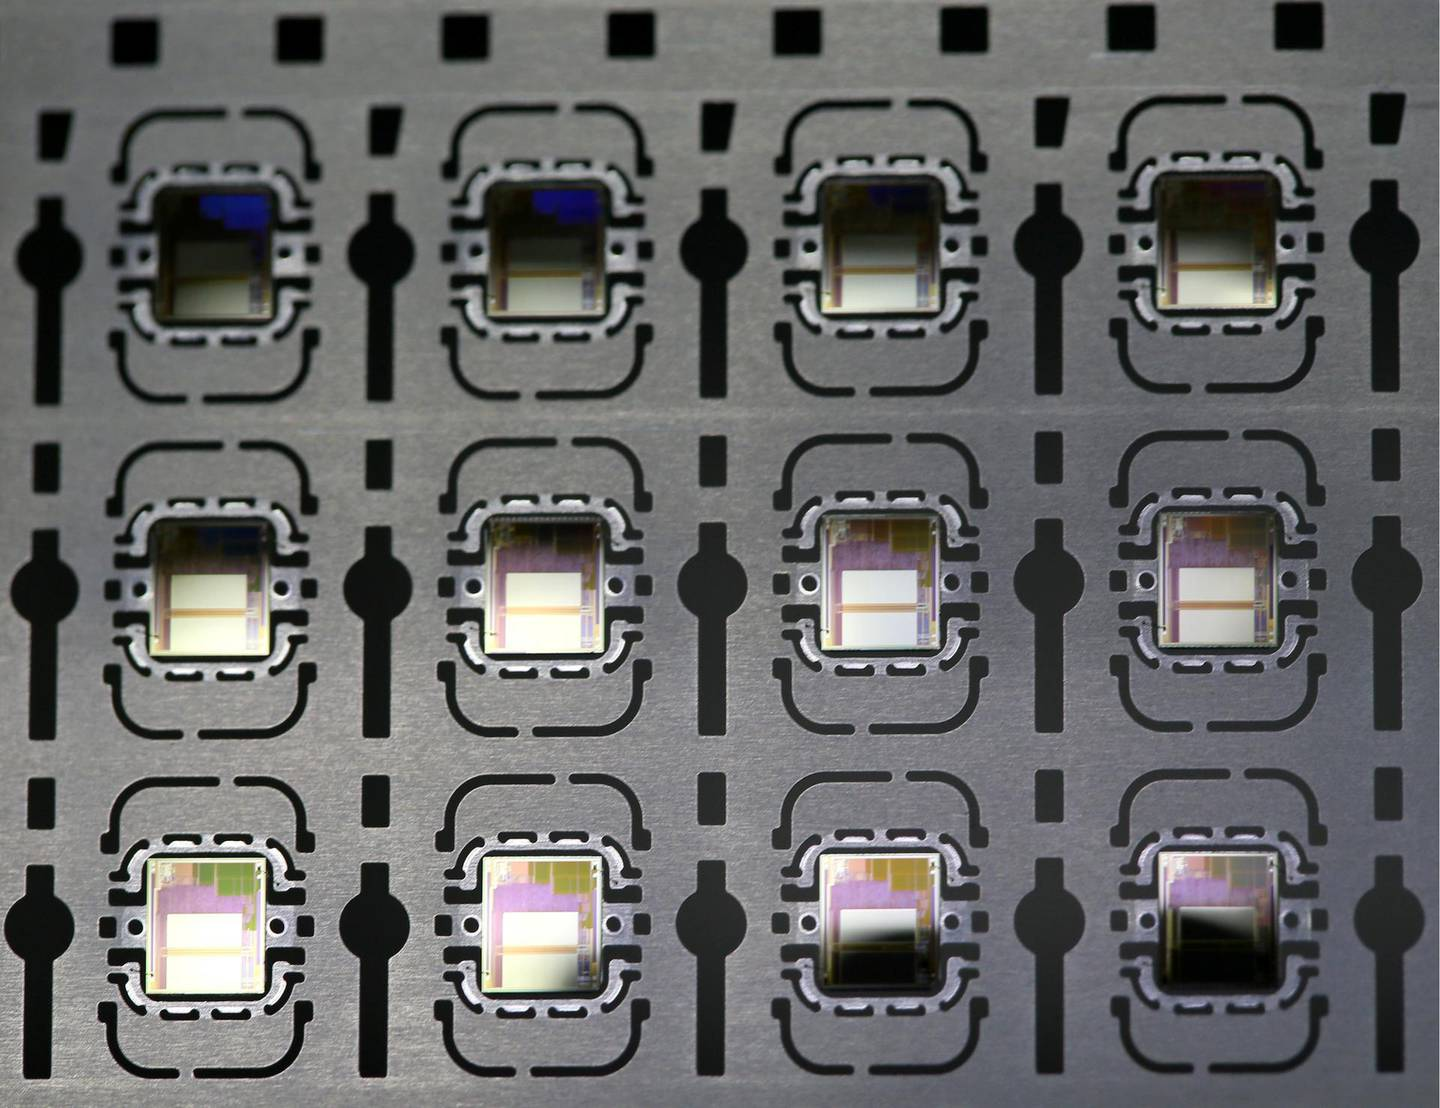 MOSCOW, RUSSIA - JULY 24, 2019: A microchip fabrication line at the Zelenograd plant of the Mikron company producing integrated circuits for access-protected data carriers, IDs, bank and travel cards, etc. Vladimir Gerdo/TASS (Photo by Vladimir Gerdo\TASS via Getty Images)